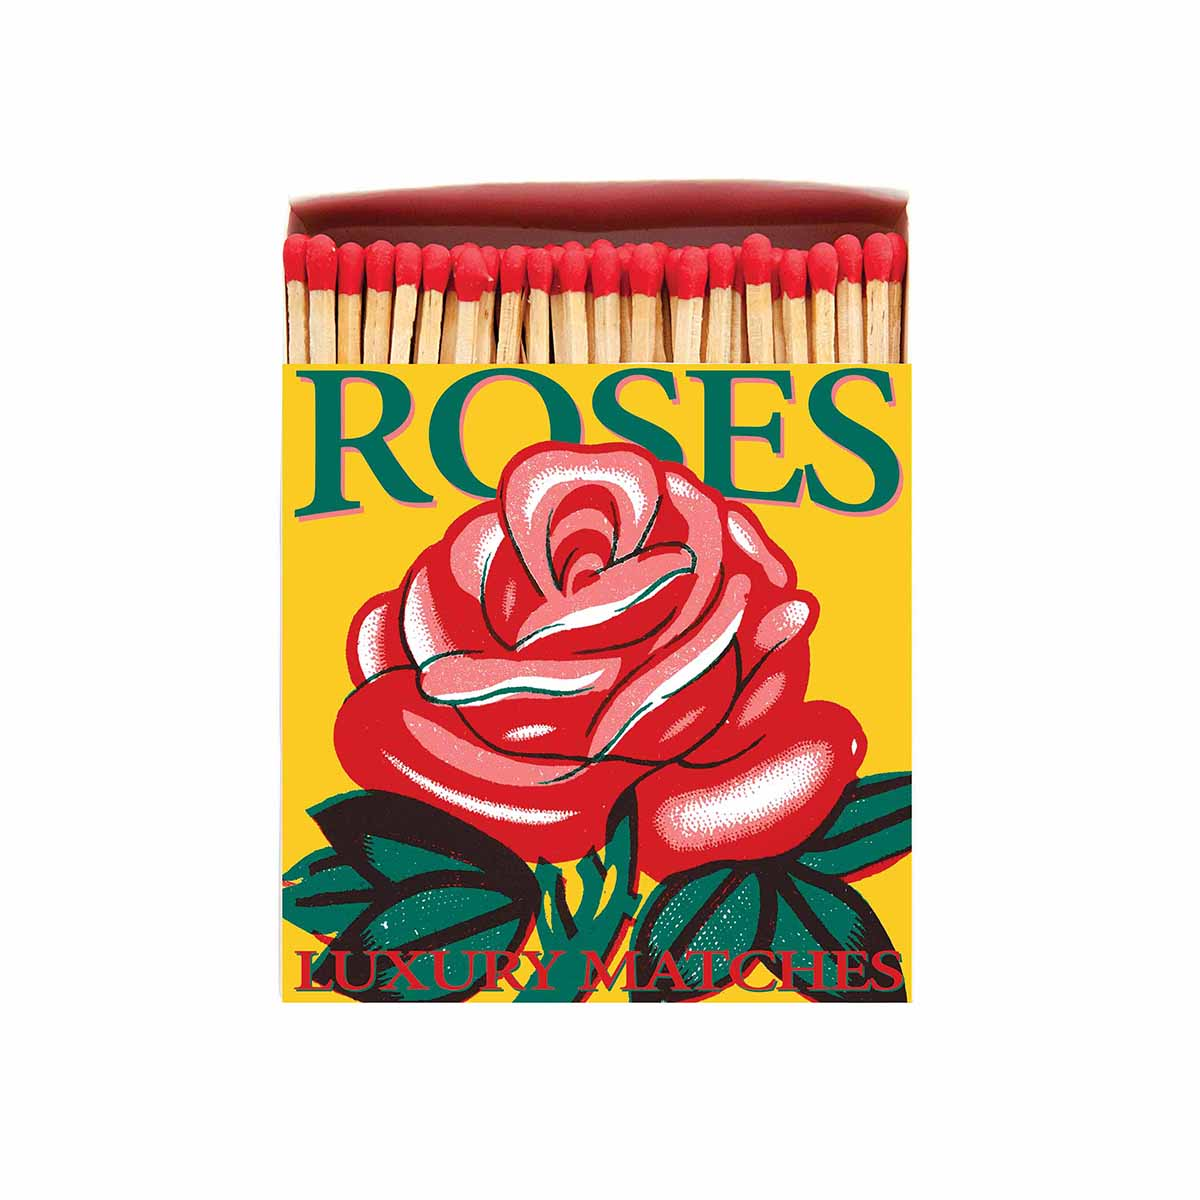 Luxury Matches -Red Rose